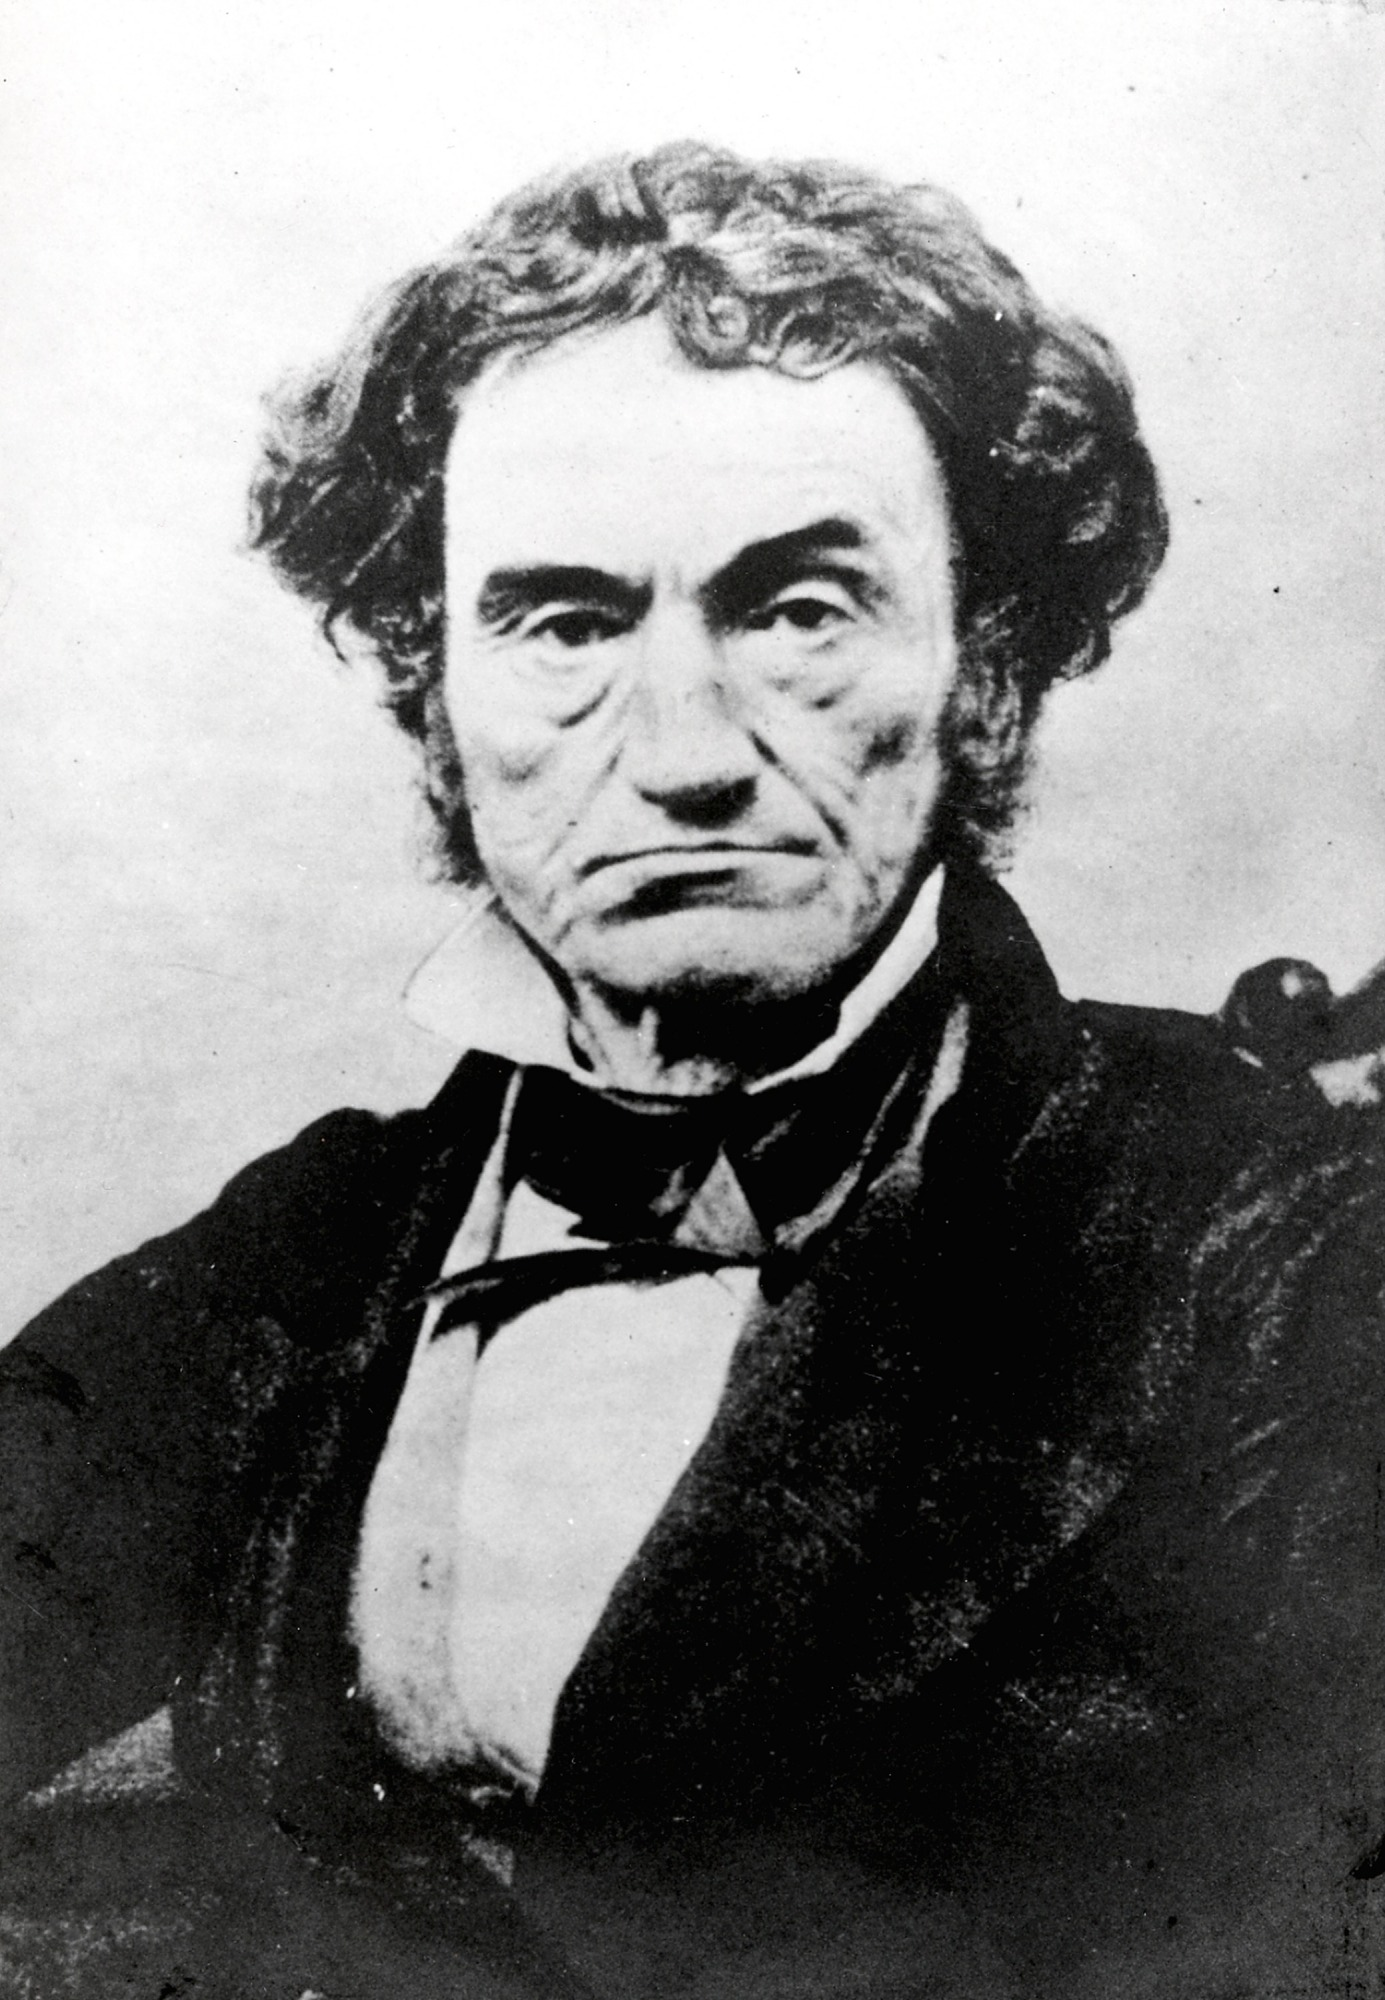 Image of Rufus Choate, c. 1845. Smithsonian Institution Archives, negative number 2002-32231.